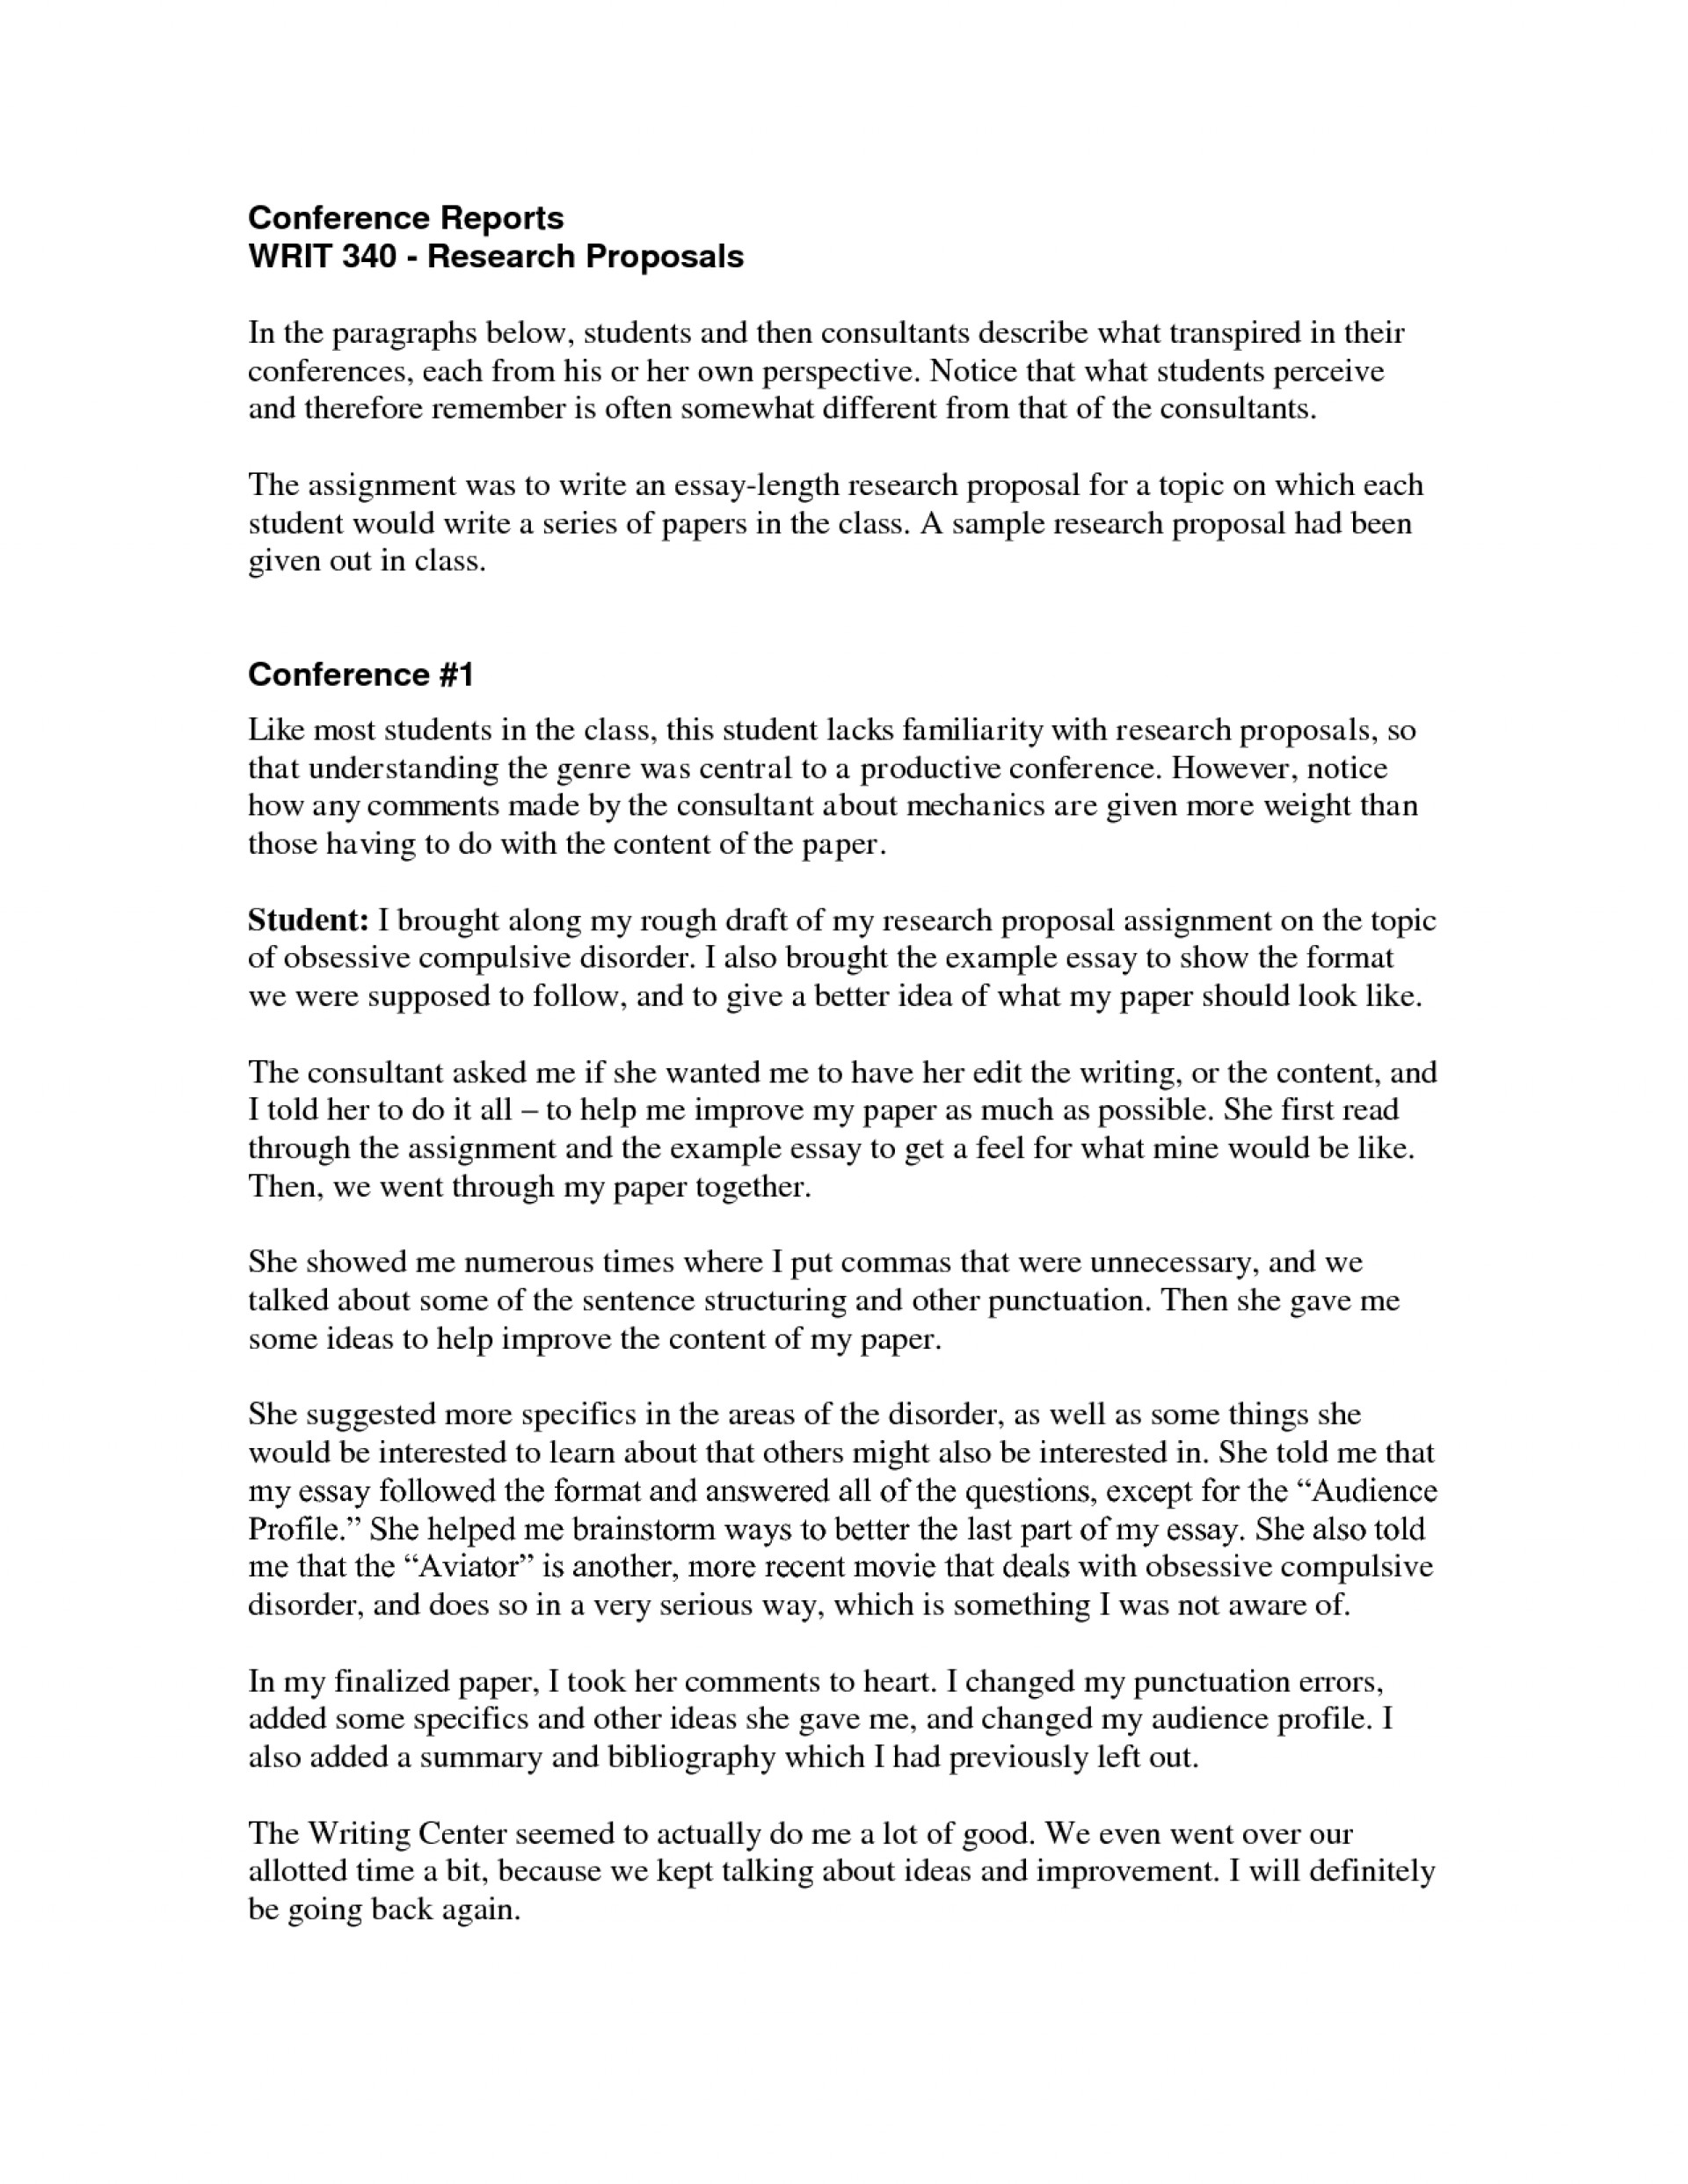 002 Research Paperpa Proposal Sample 542914 How To Write Amazing A Paper Apa 1920